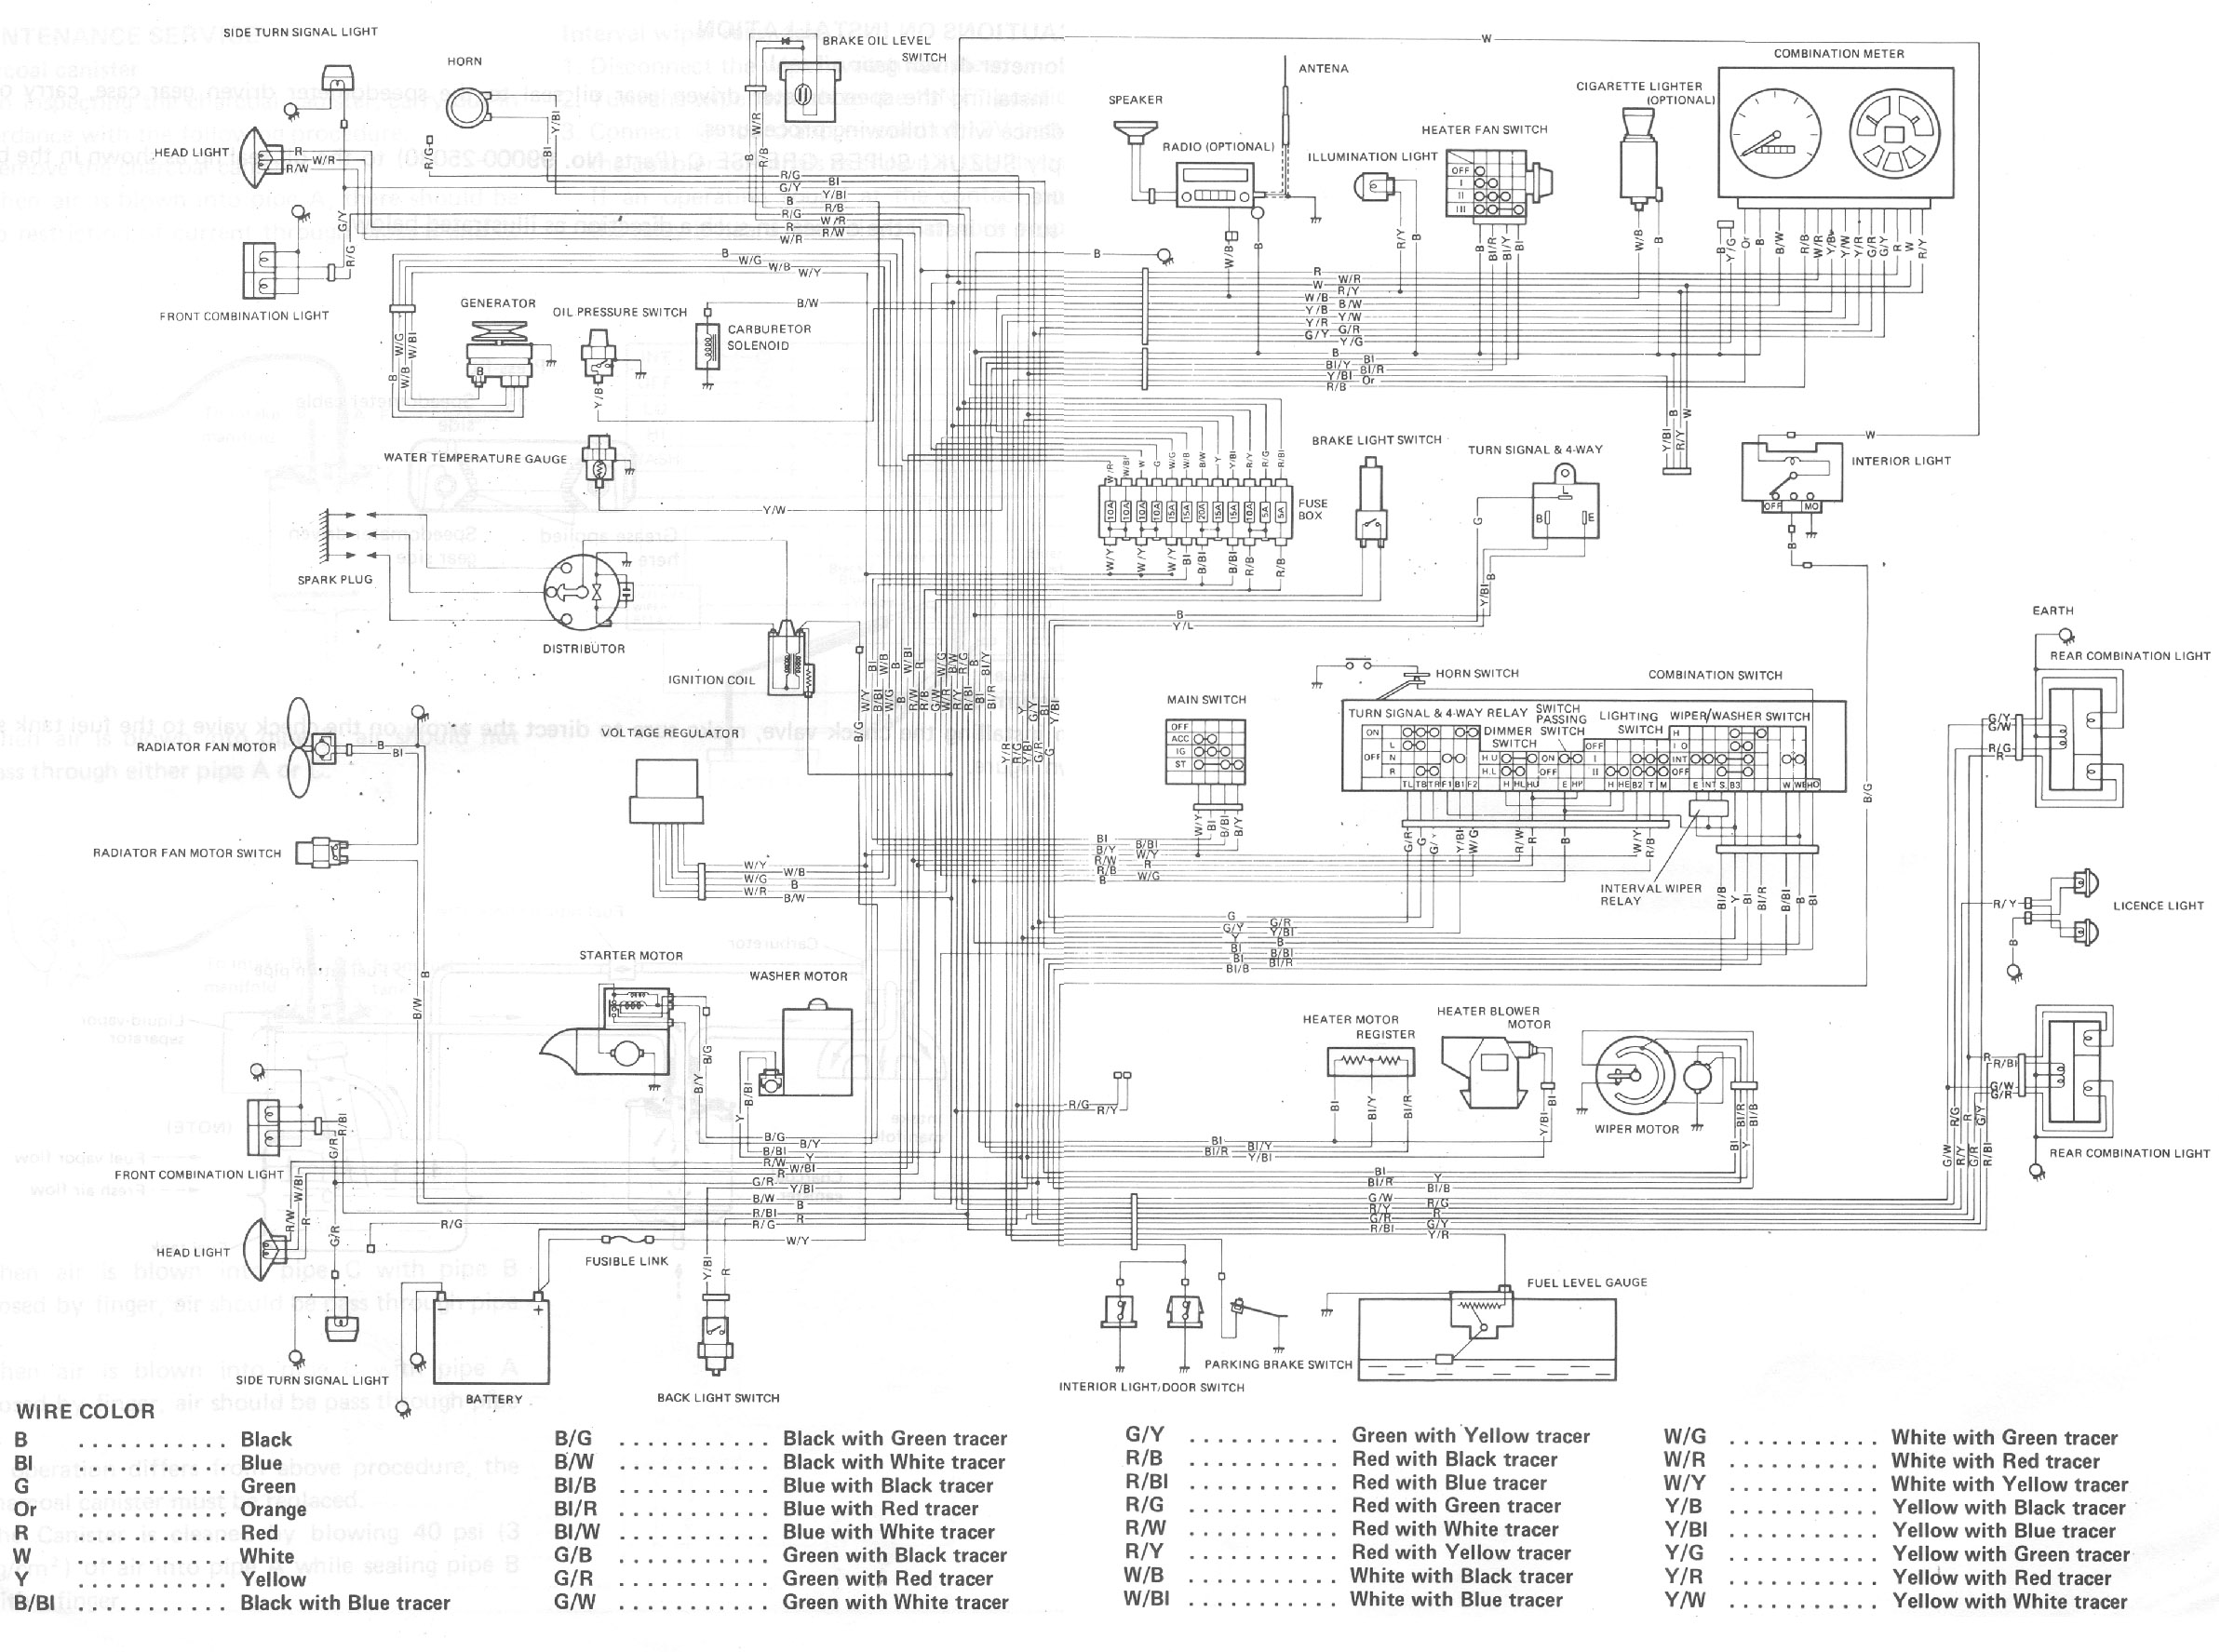 Electric_diagram bad boy buggy wiring diagram 36 volt ezgo wiring diagram 1997 250 volt wiring diagram at reclaimingppi.co